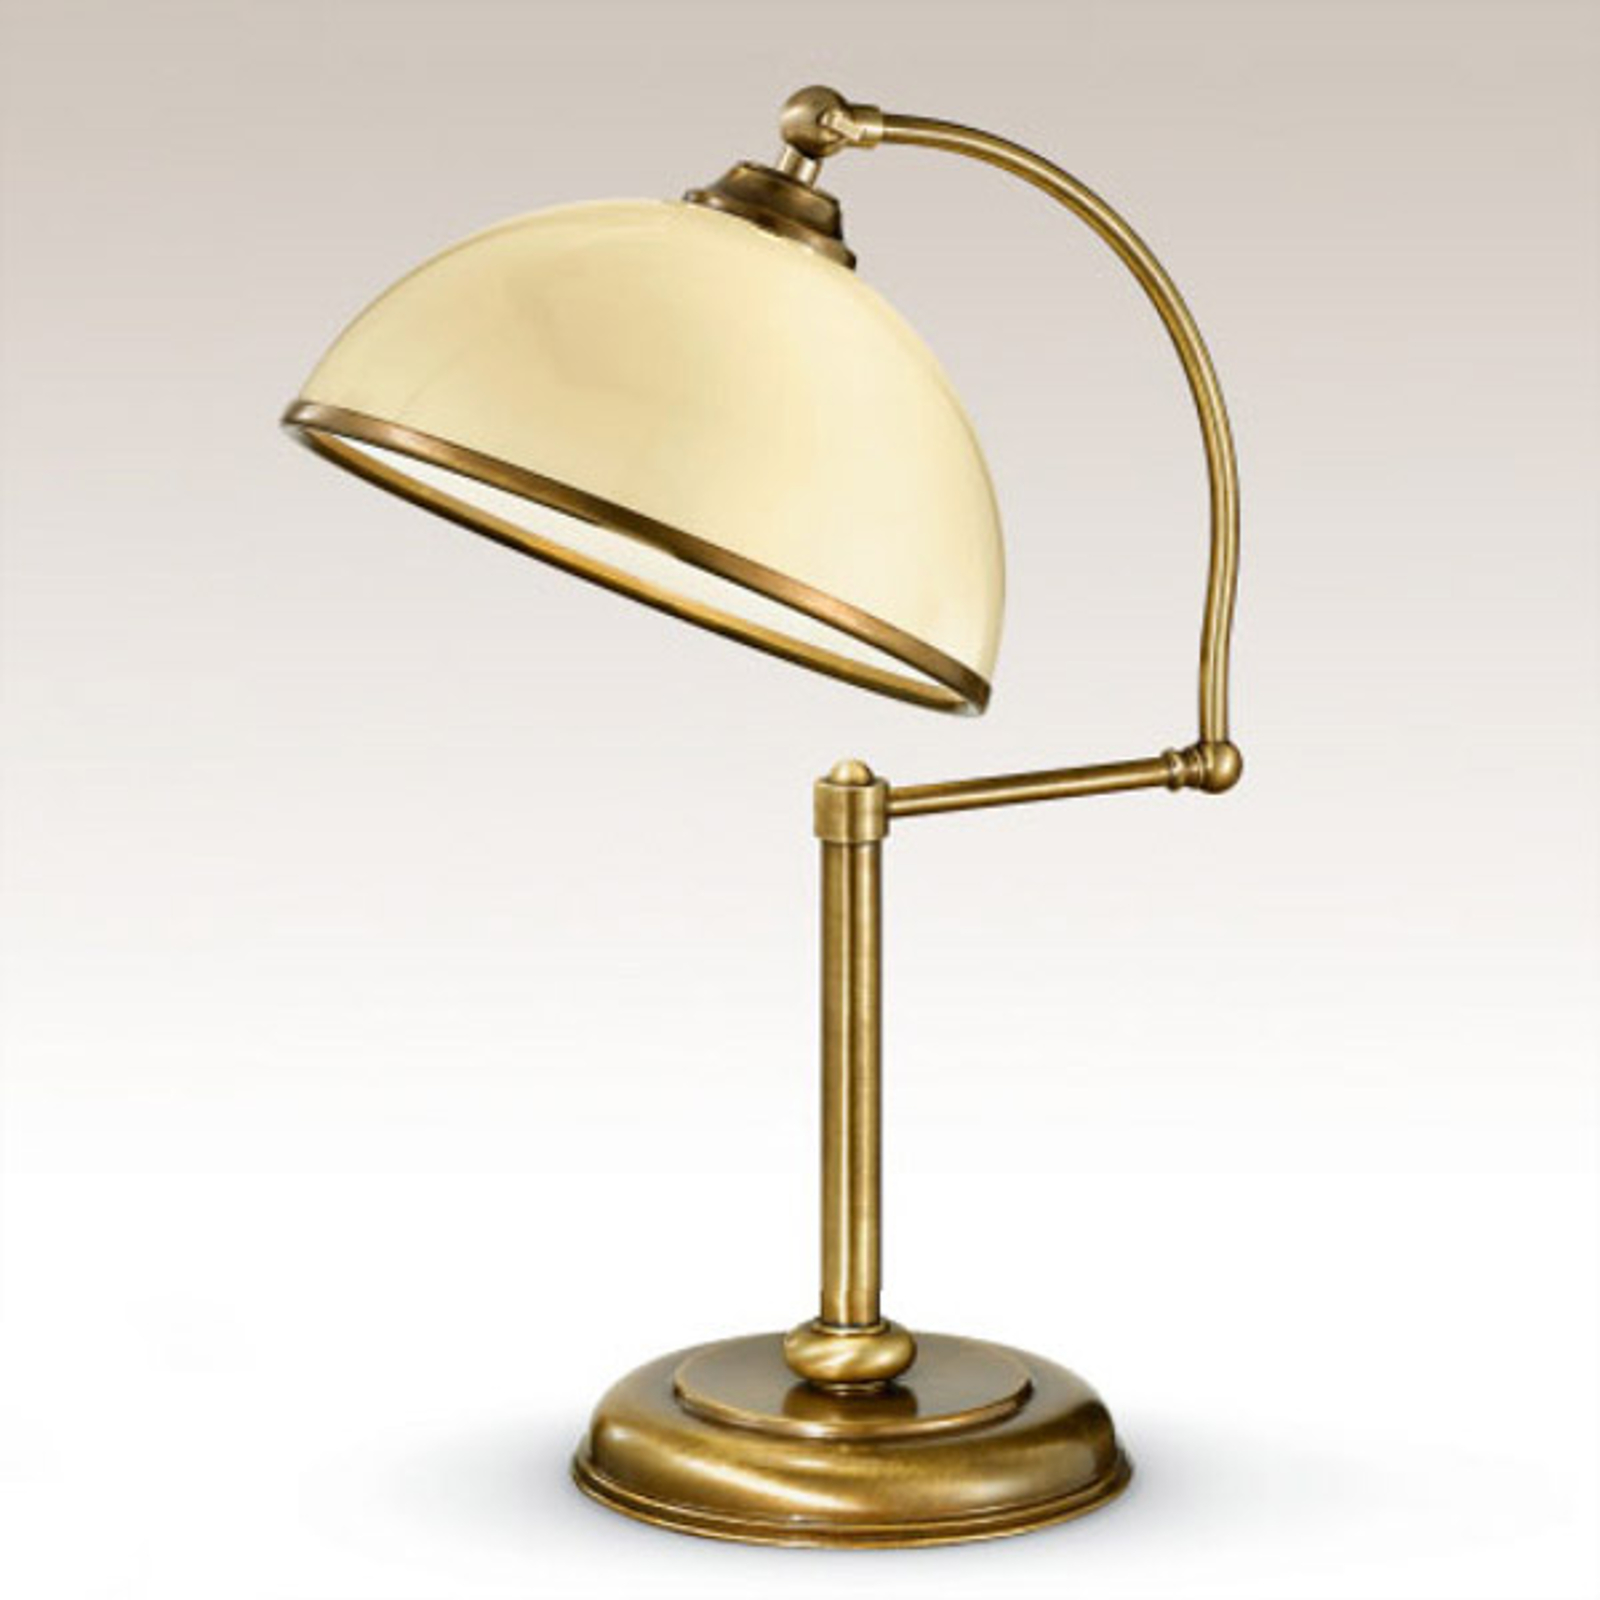 Adjustable La Botte table lamp_2008068_1